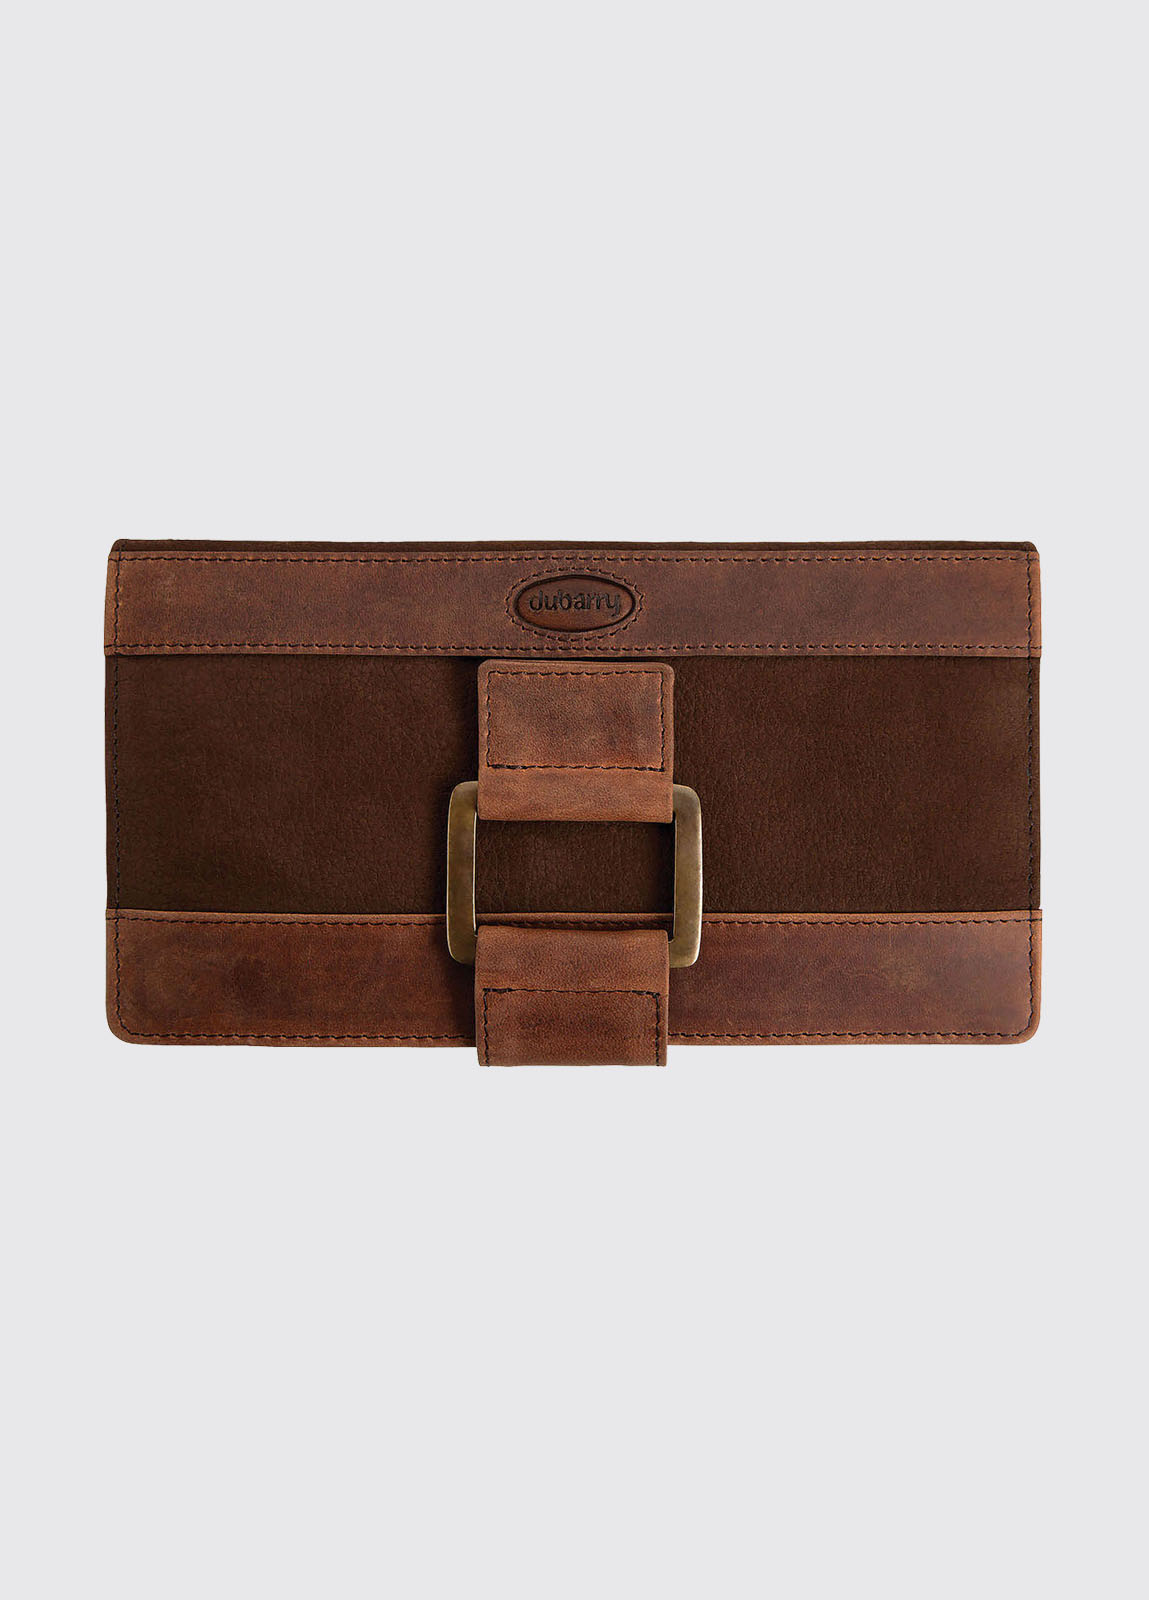 Dunbrody Leather Purse - Walnut